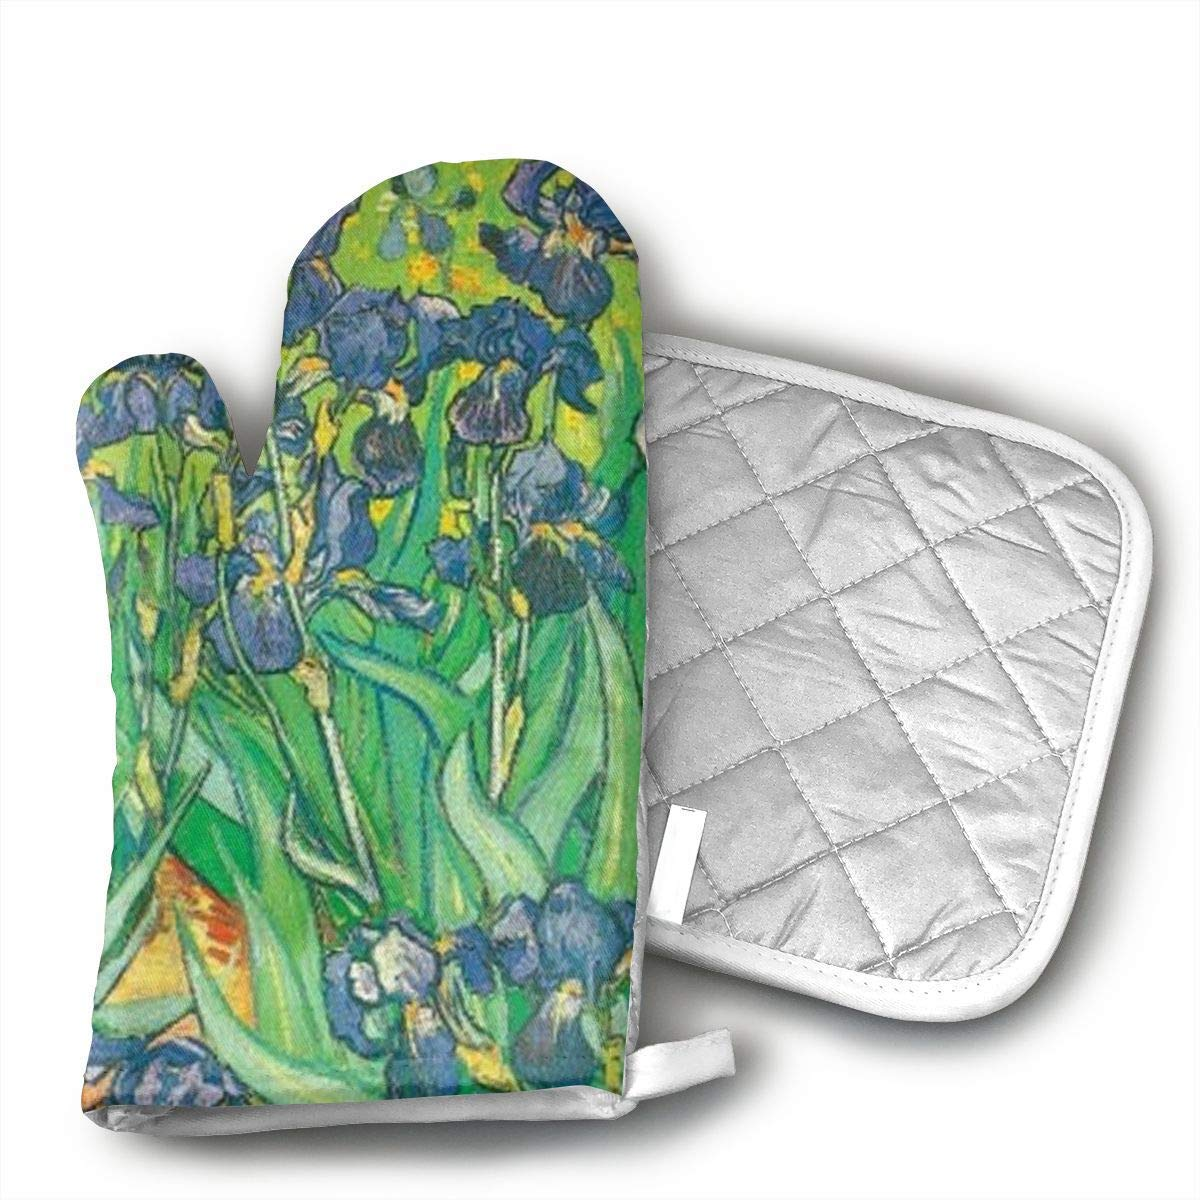 Decorative Oven Mitts Grilling Gloves Heat Resistant Gloves BBQ Kitchen Oven Mitts Long Waterproof Non-Slip Potholder for Barbecue Cooking Baking BBQ Gloves